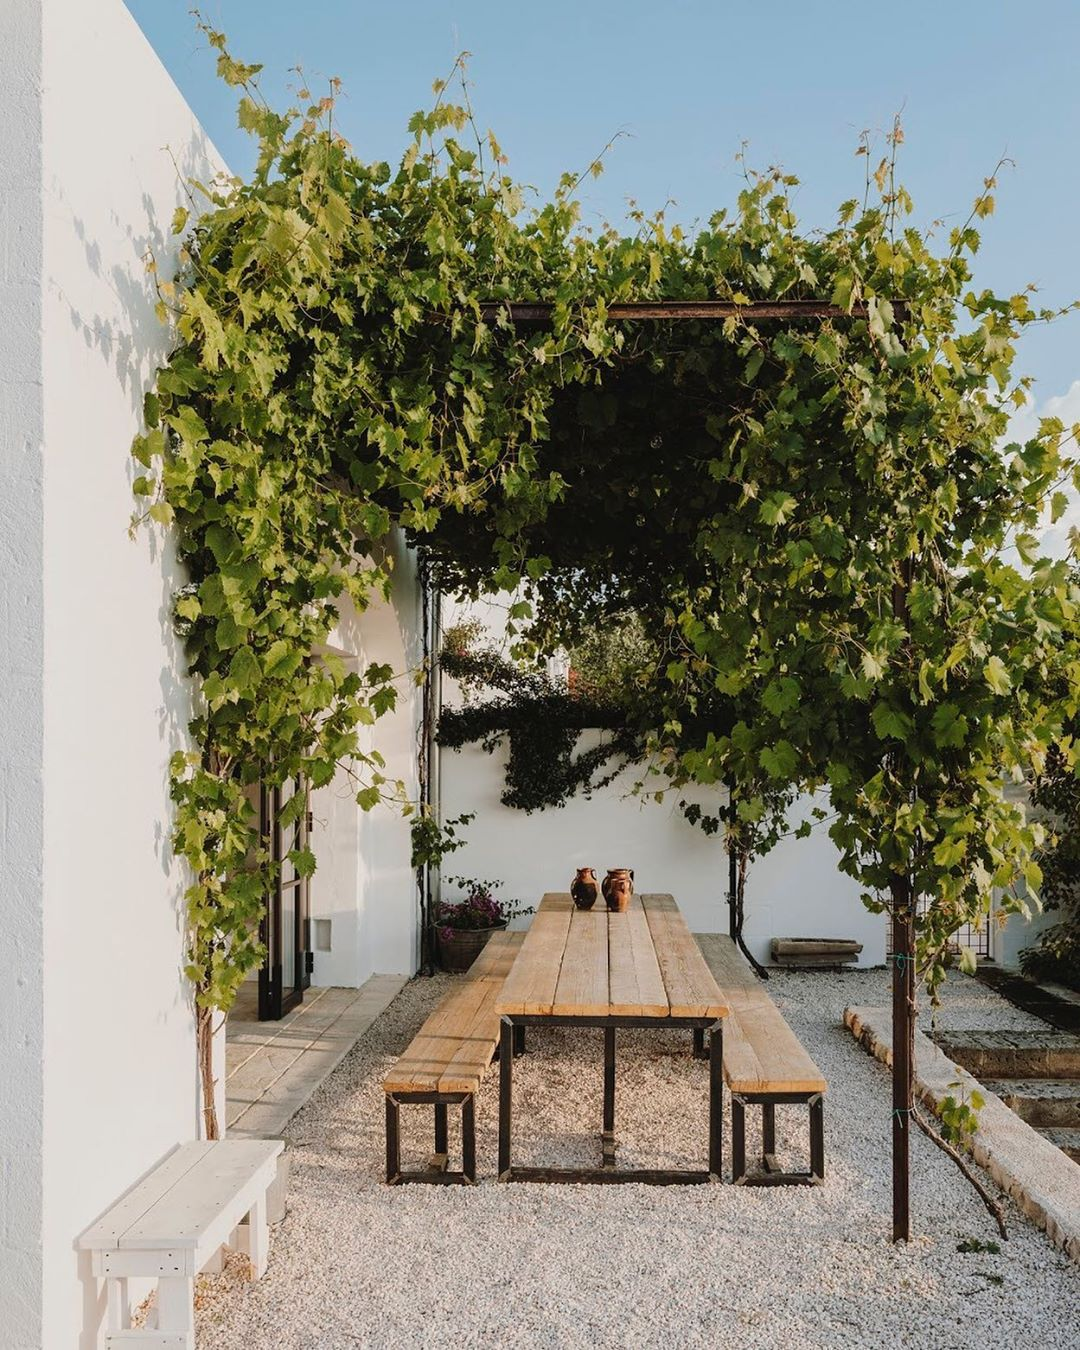 1. OUTDOOR LIVING - think covered seating areas for entertaining, overgrown pergolas and wide open courtyards with little shaded corners to escape the summer heat